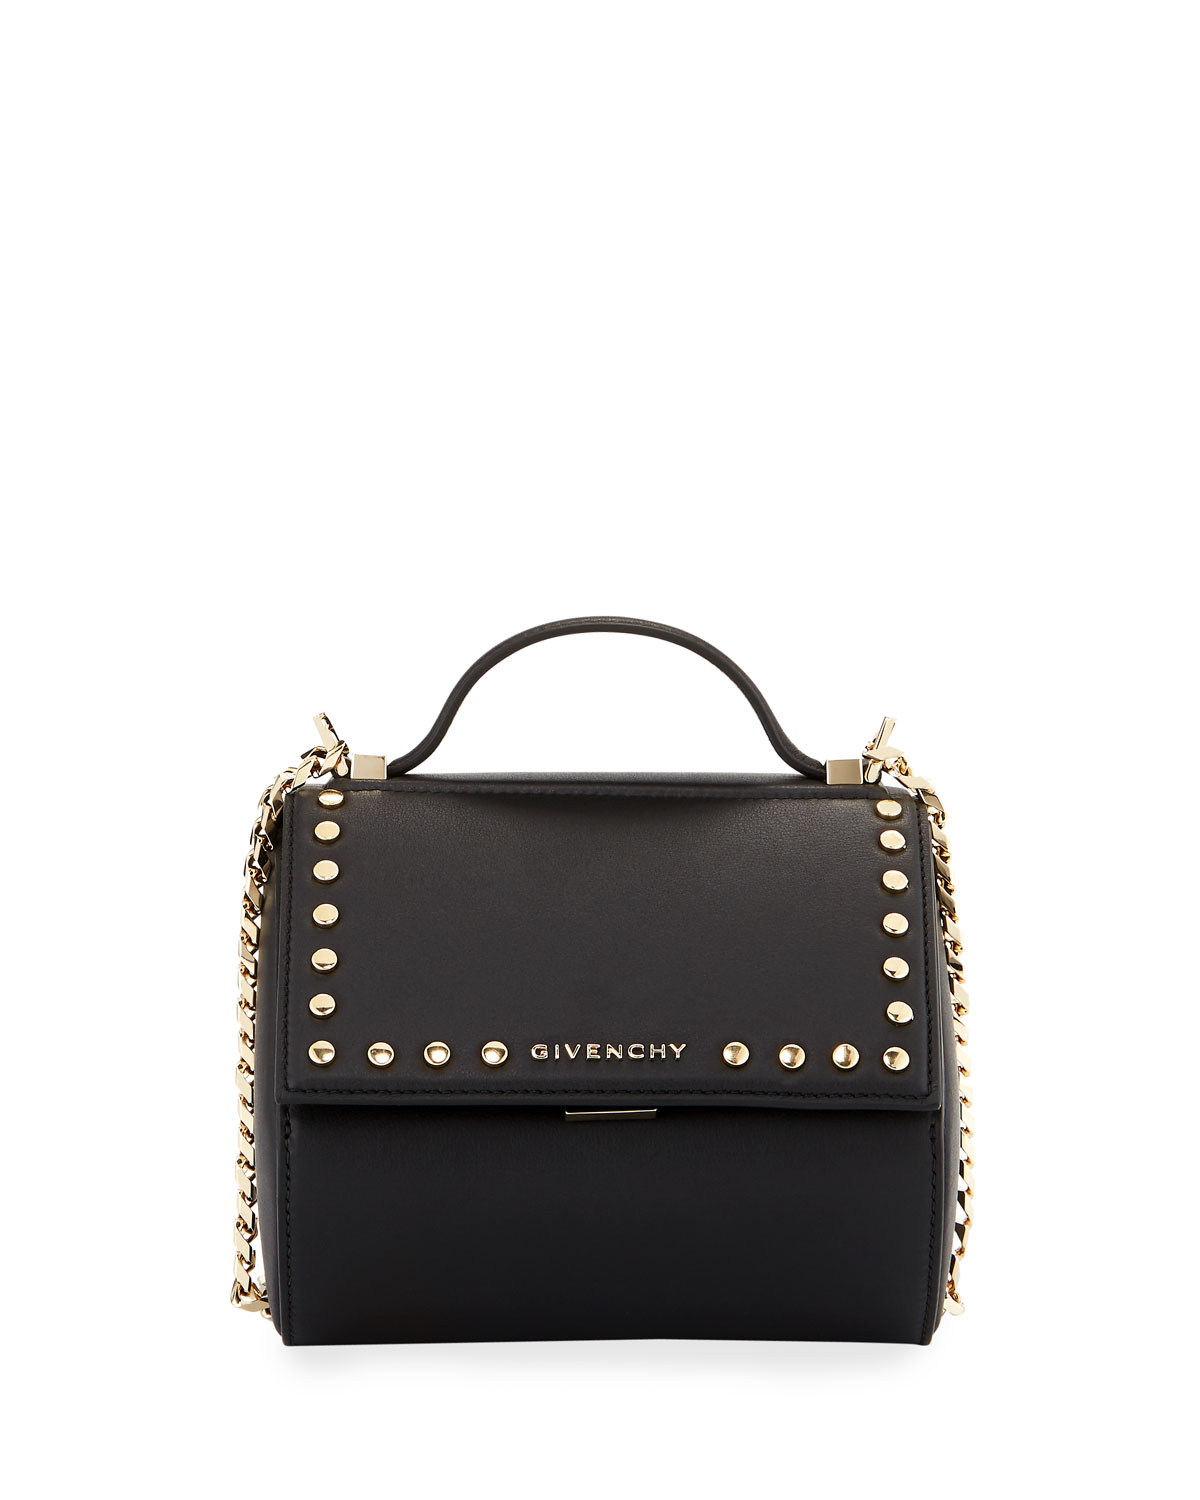 f217773397 Givenchy Pandora Box Chain Studded Shoulder Bag